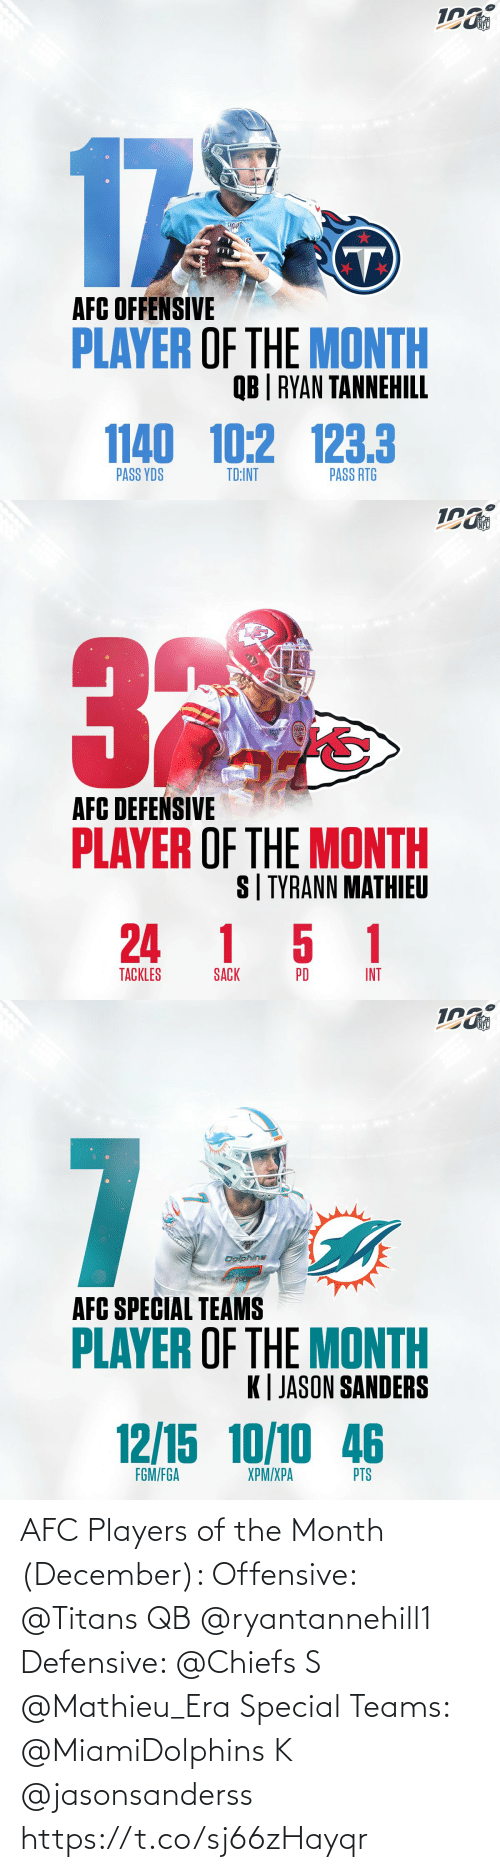 december: NFL  17  AFC OFFENSIVE  PLAYER OF THE MONTH  QB | RYAN TANNEHILL  1140 10:2 123.3  PASS RTG  PASS YDS  TD:INT   NFL  AFC DEFEŃSIVE  PLAYER OF THE MONTH  S| TYRANN MATHIEU  24 1 5 1  TACKLES  INT  PD  SACK   NFL  7  Dolphins  AFC SPECIAL TEAMS  PLAYER OF THE MONTH  K| JASON SANDERS  12/15 10/10 46  FGM/FGA  XPM/XPA  PTS AFC Players of the Month (December):   Offensive: @Titans QB @ryantannehill1    Defensive: @Chiefs S @Mathieu_Era   Special Teams: @MiamiDolphins K @jasonsanderss https://t.co/sj66zHayqr